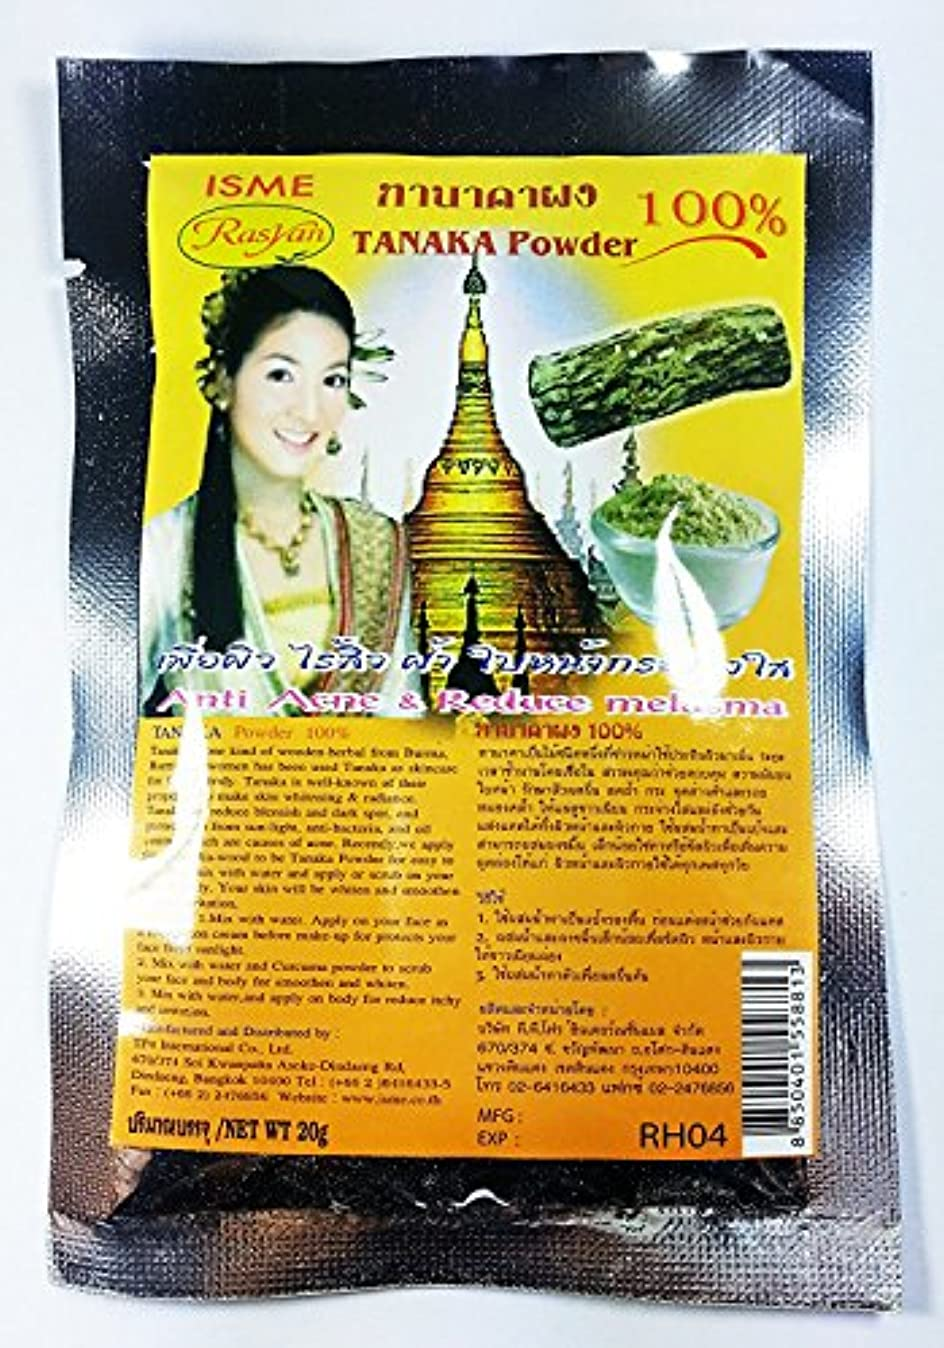 Thanakha Tanaka Herbal Powder タナカパウダー 20 grams.